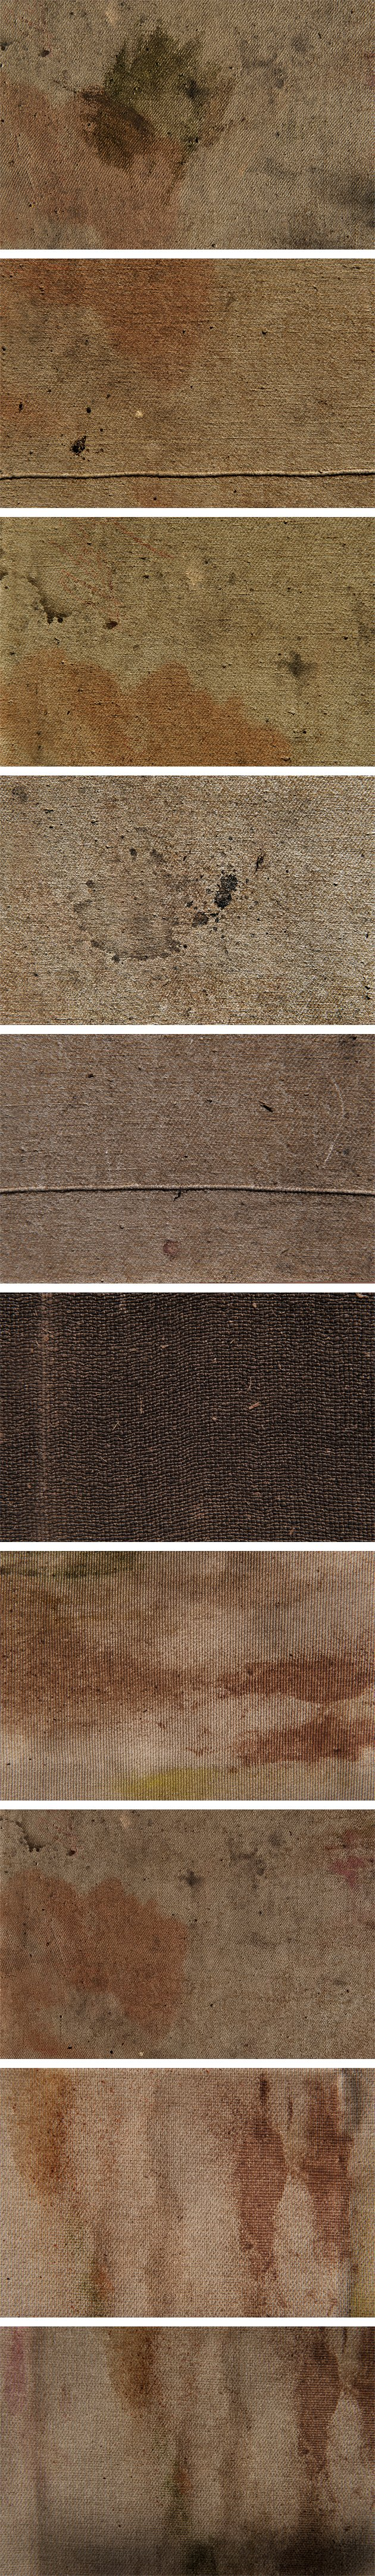 designtnt-textures-dirty-canvas-2-large